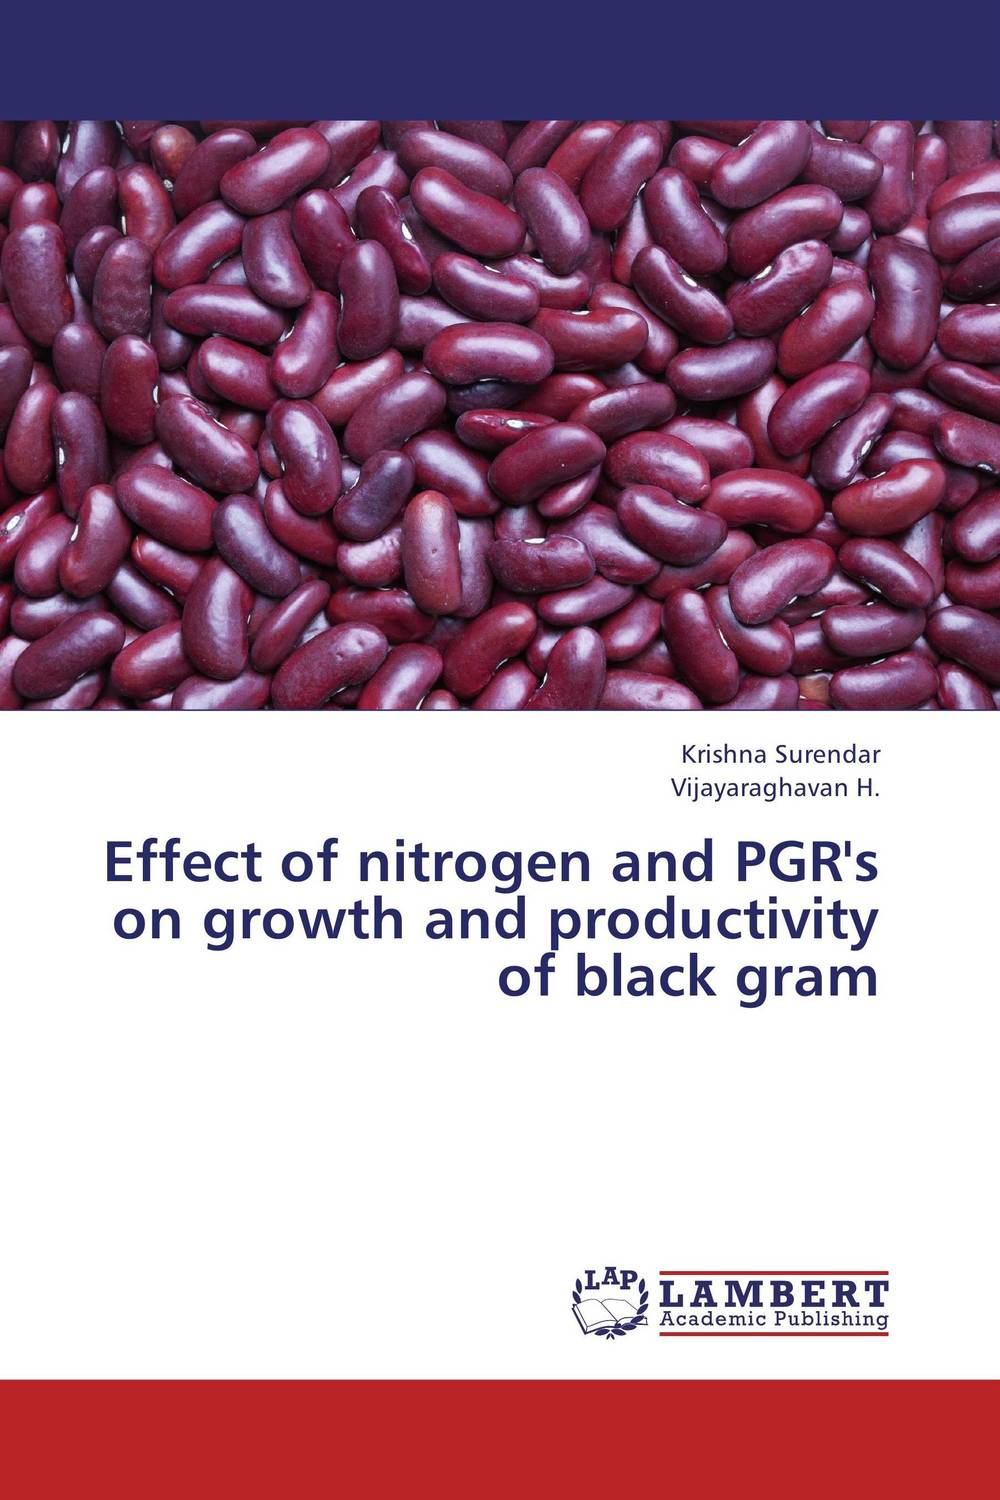 цена на Effect of nitrogen and PGR's on growth and productivity of black gram